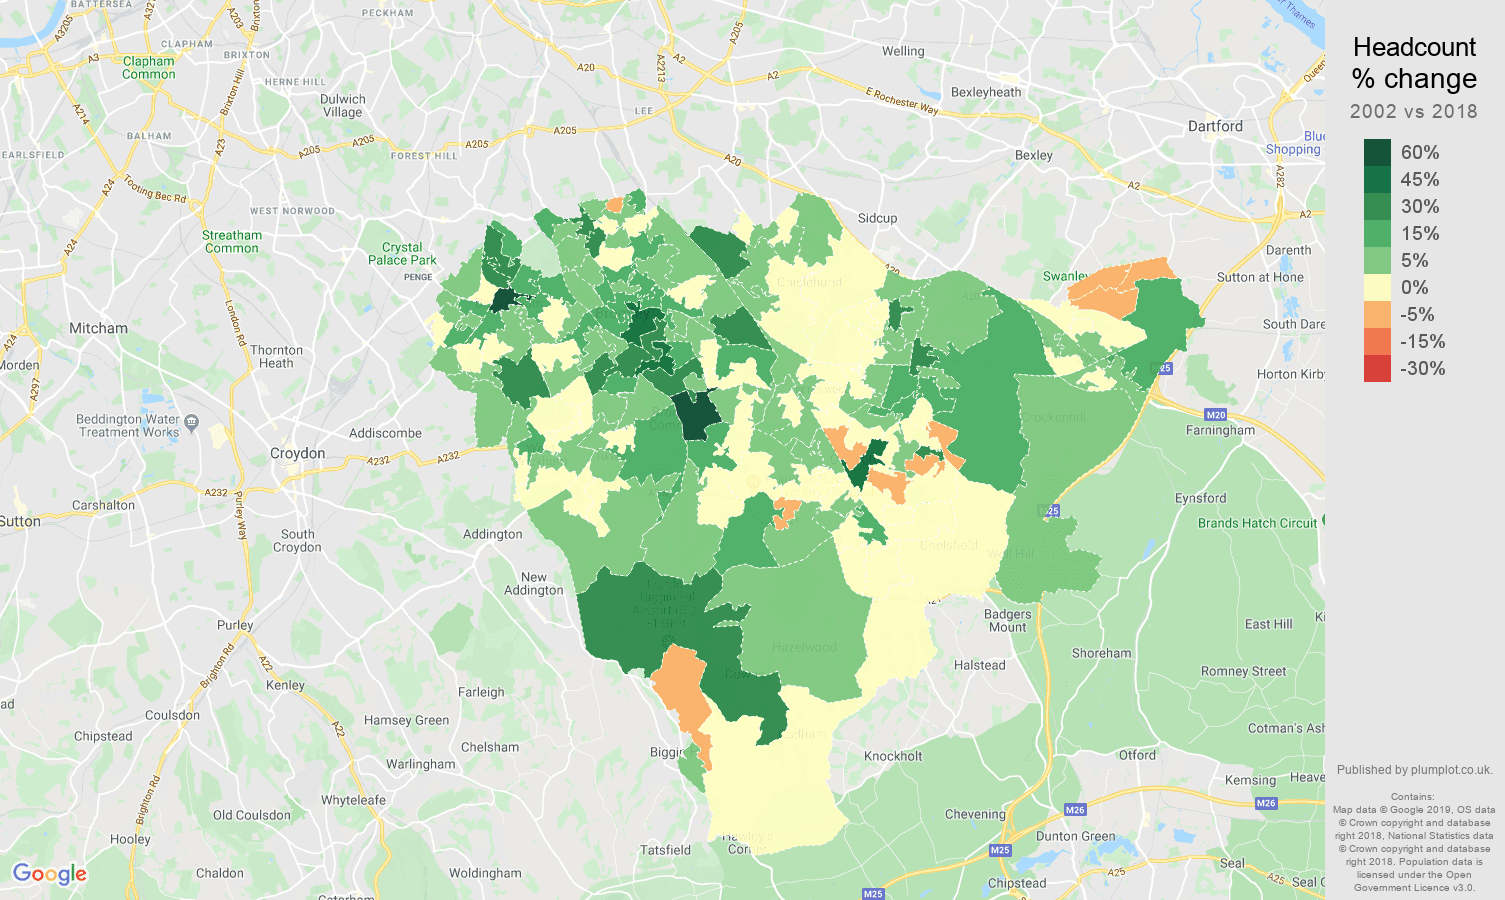 Bromley headcount change map